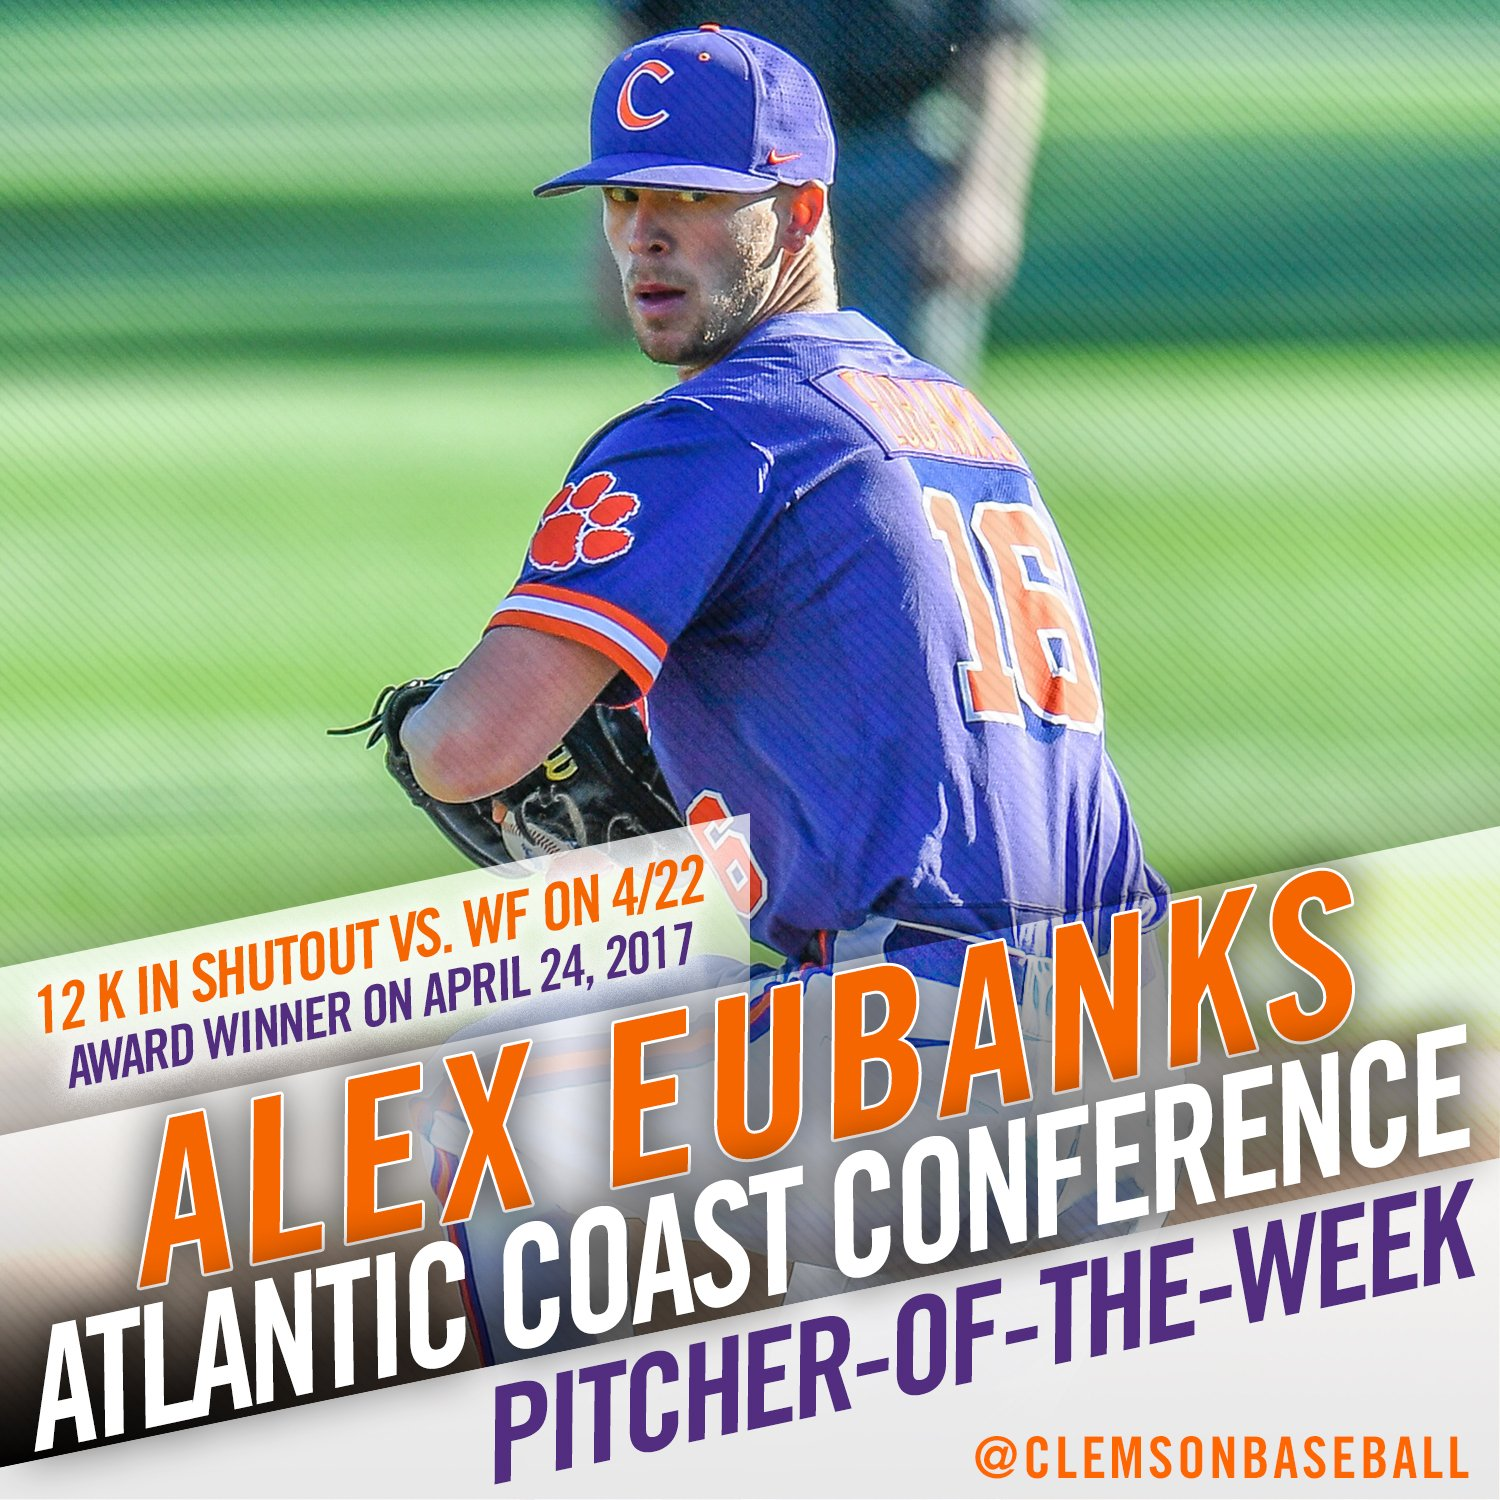 Eubanks named ACC Pitcher-of-the-Week for 2nd time in 2017 & 3rd time in his career.  STORY: https://t.co/9spCKf4yBa https://t.co/QD6LgajH2q